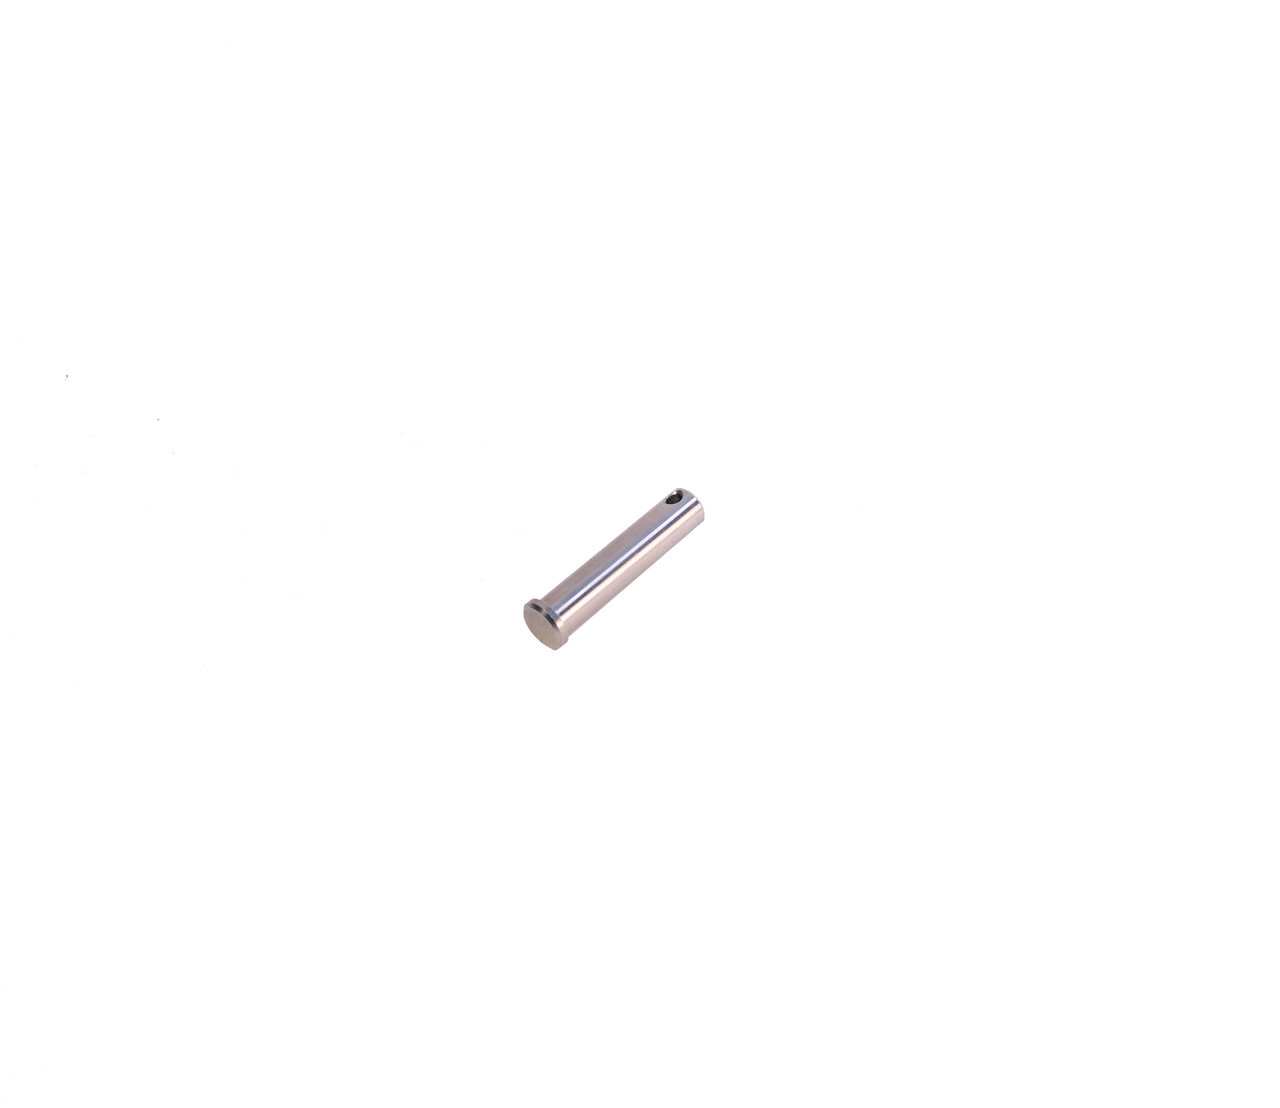 """grip length to hole Hobie Cat 16 Adjuster pin Stainless steel 1//4 x 5//8/"""""""